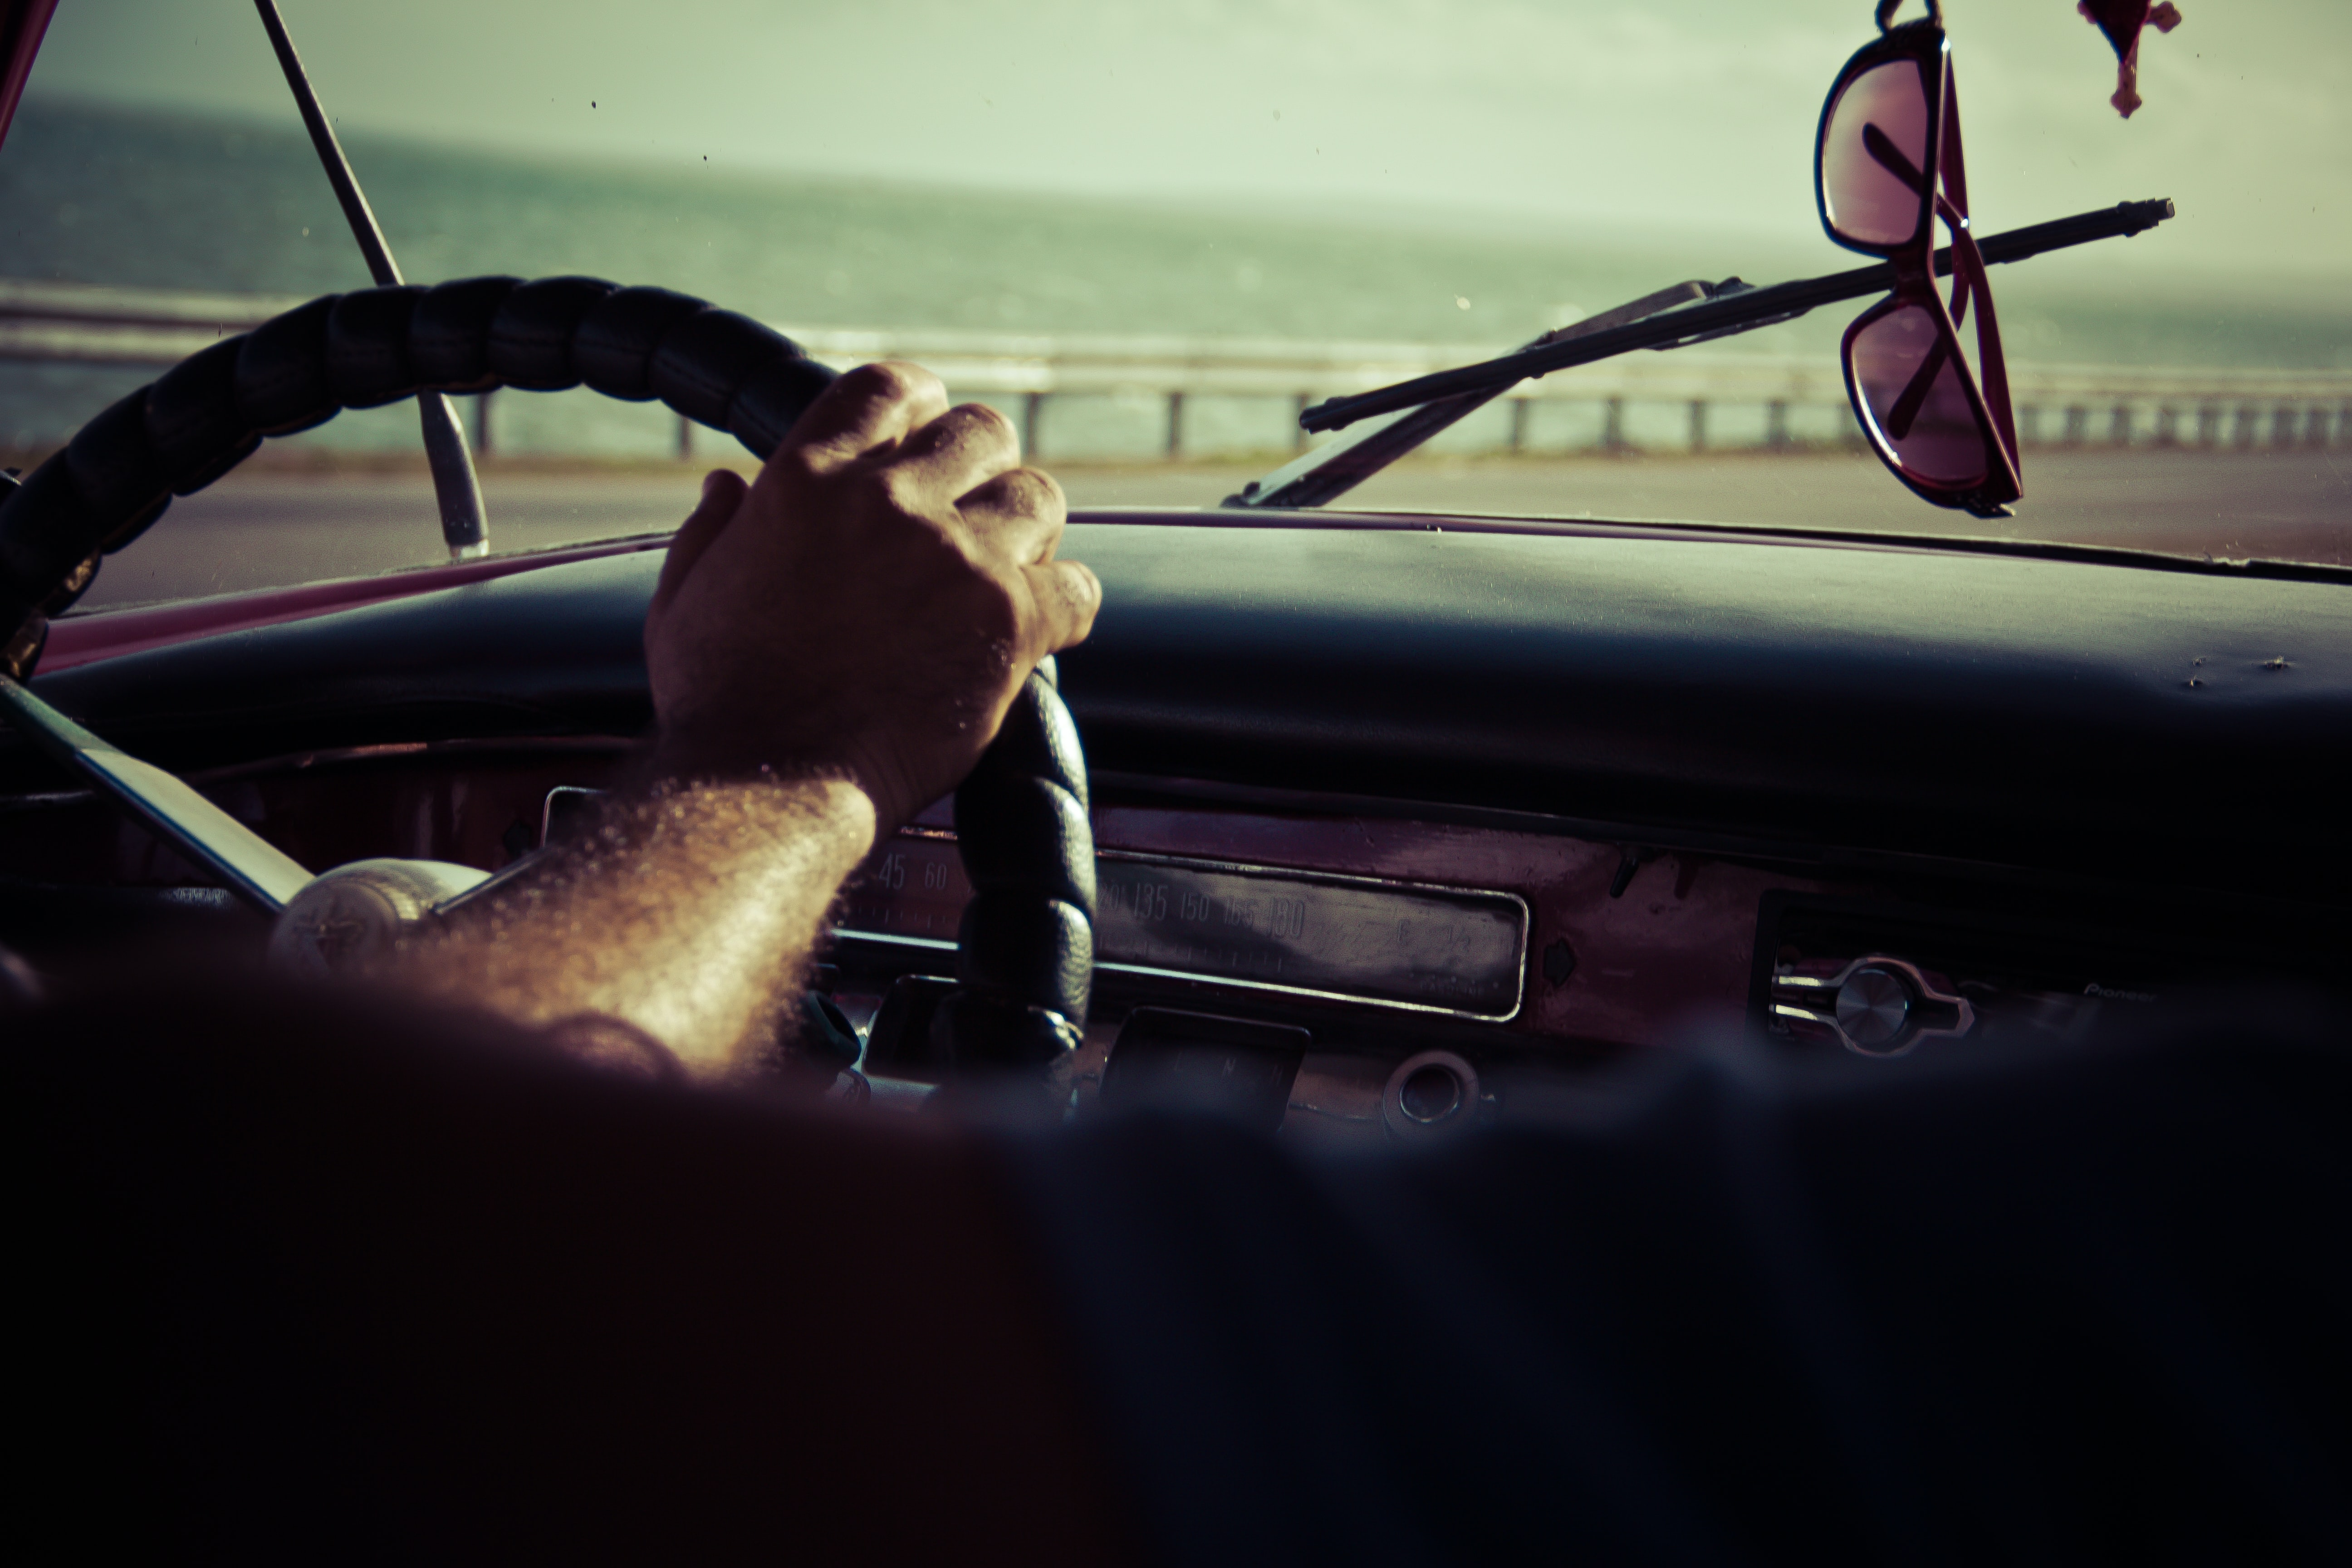 person holding steering wheel